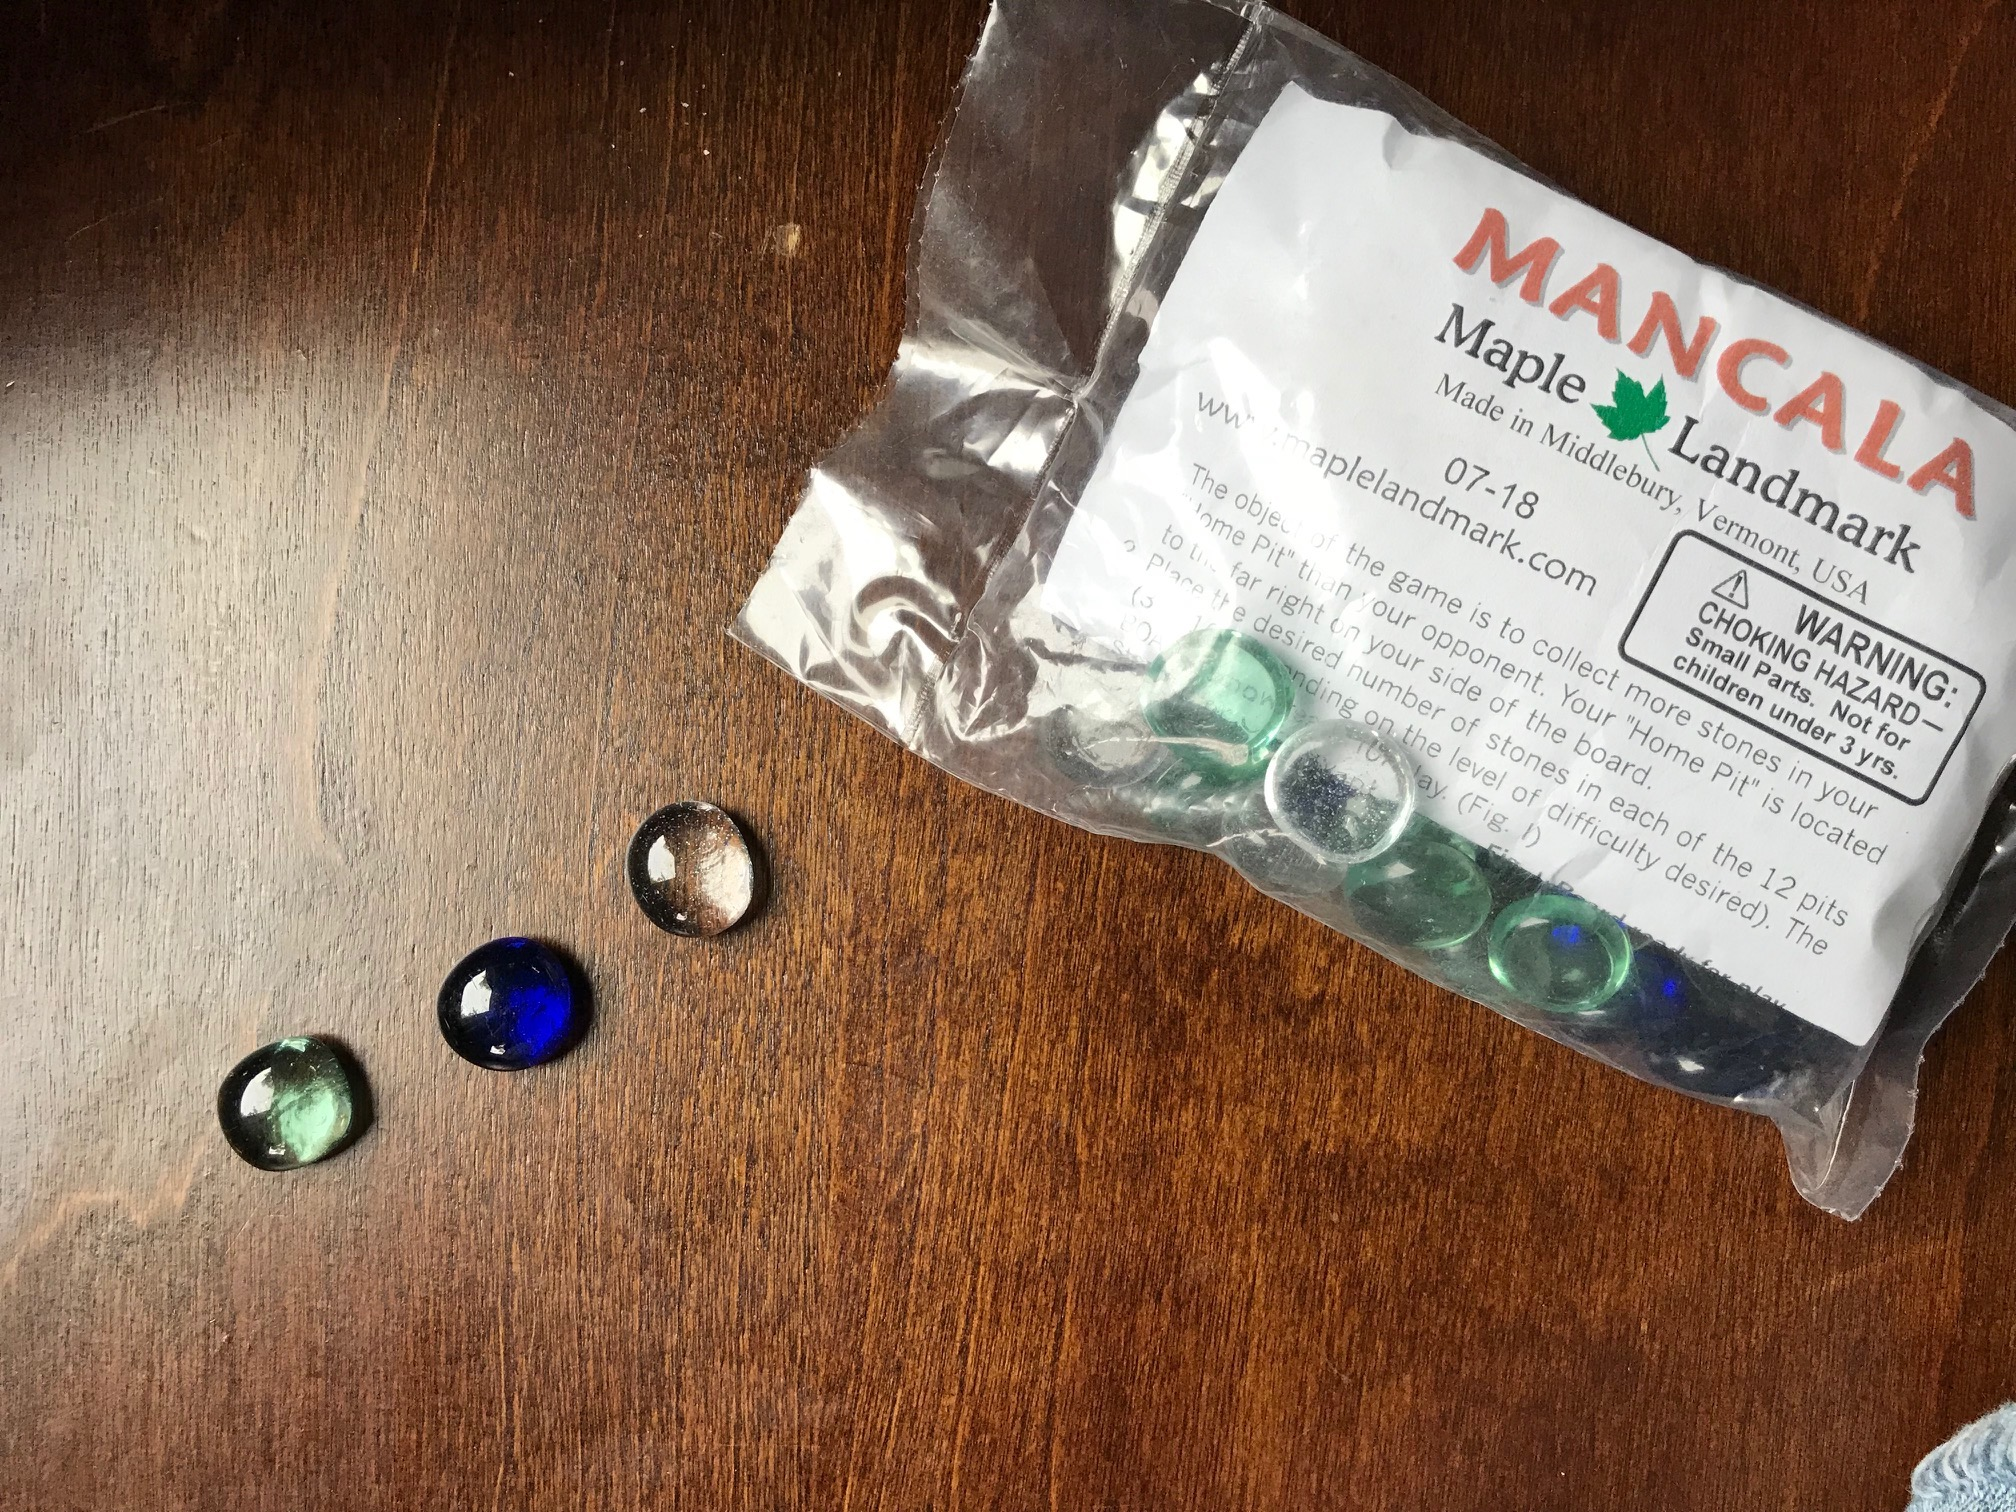 #AskTamara: Do Glass Dragon Tears Have Lead? (Aka: Squashed Marbles, Glass Drops or Mancala Stones?)